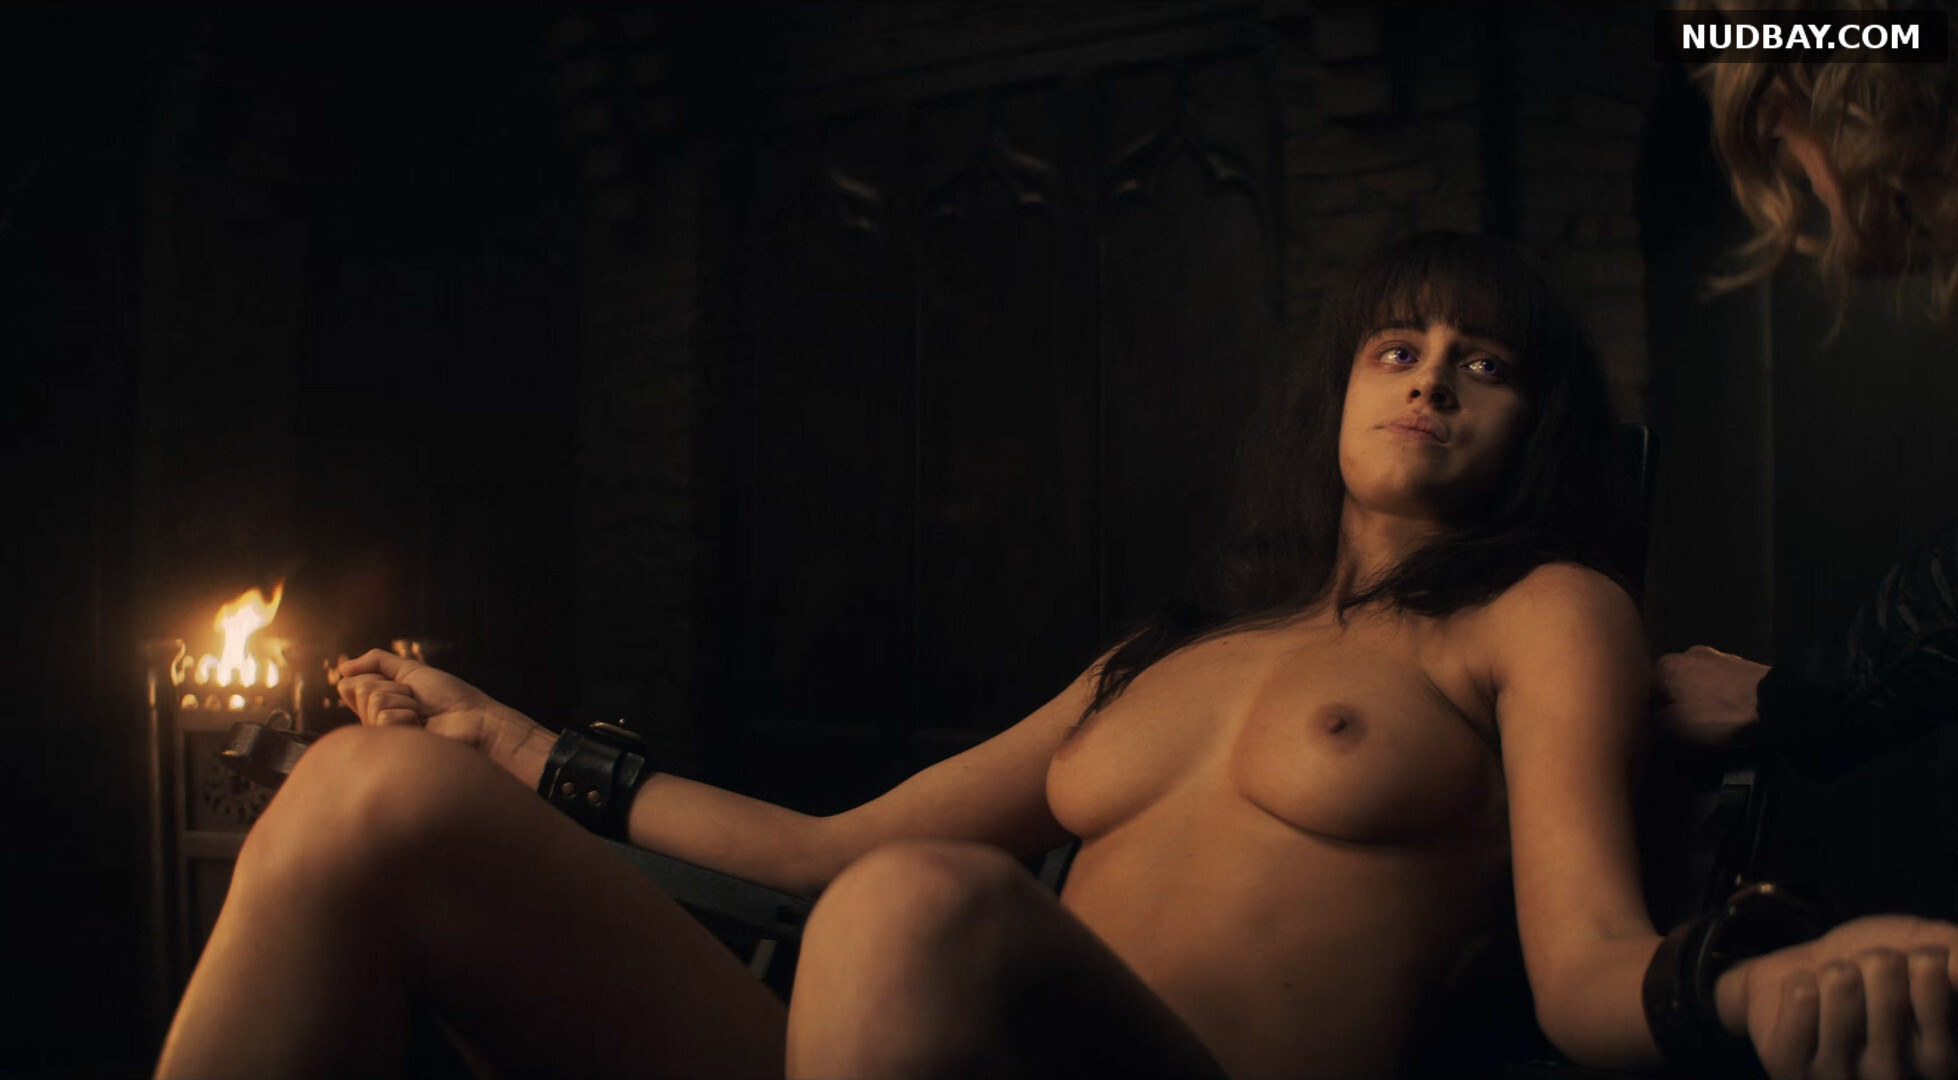 Anya Chalotra nude in The Witcher S01 (2019)